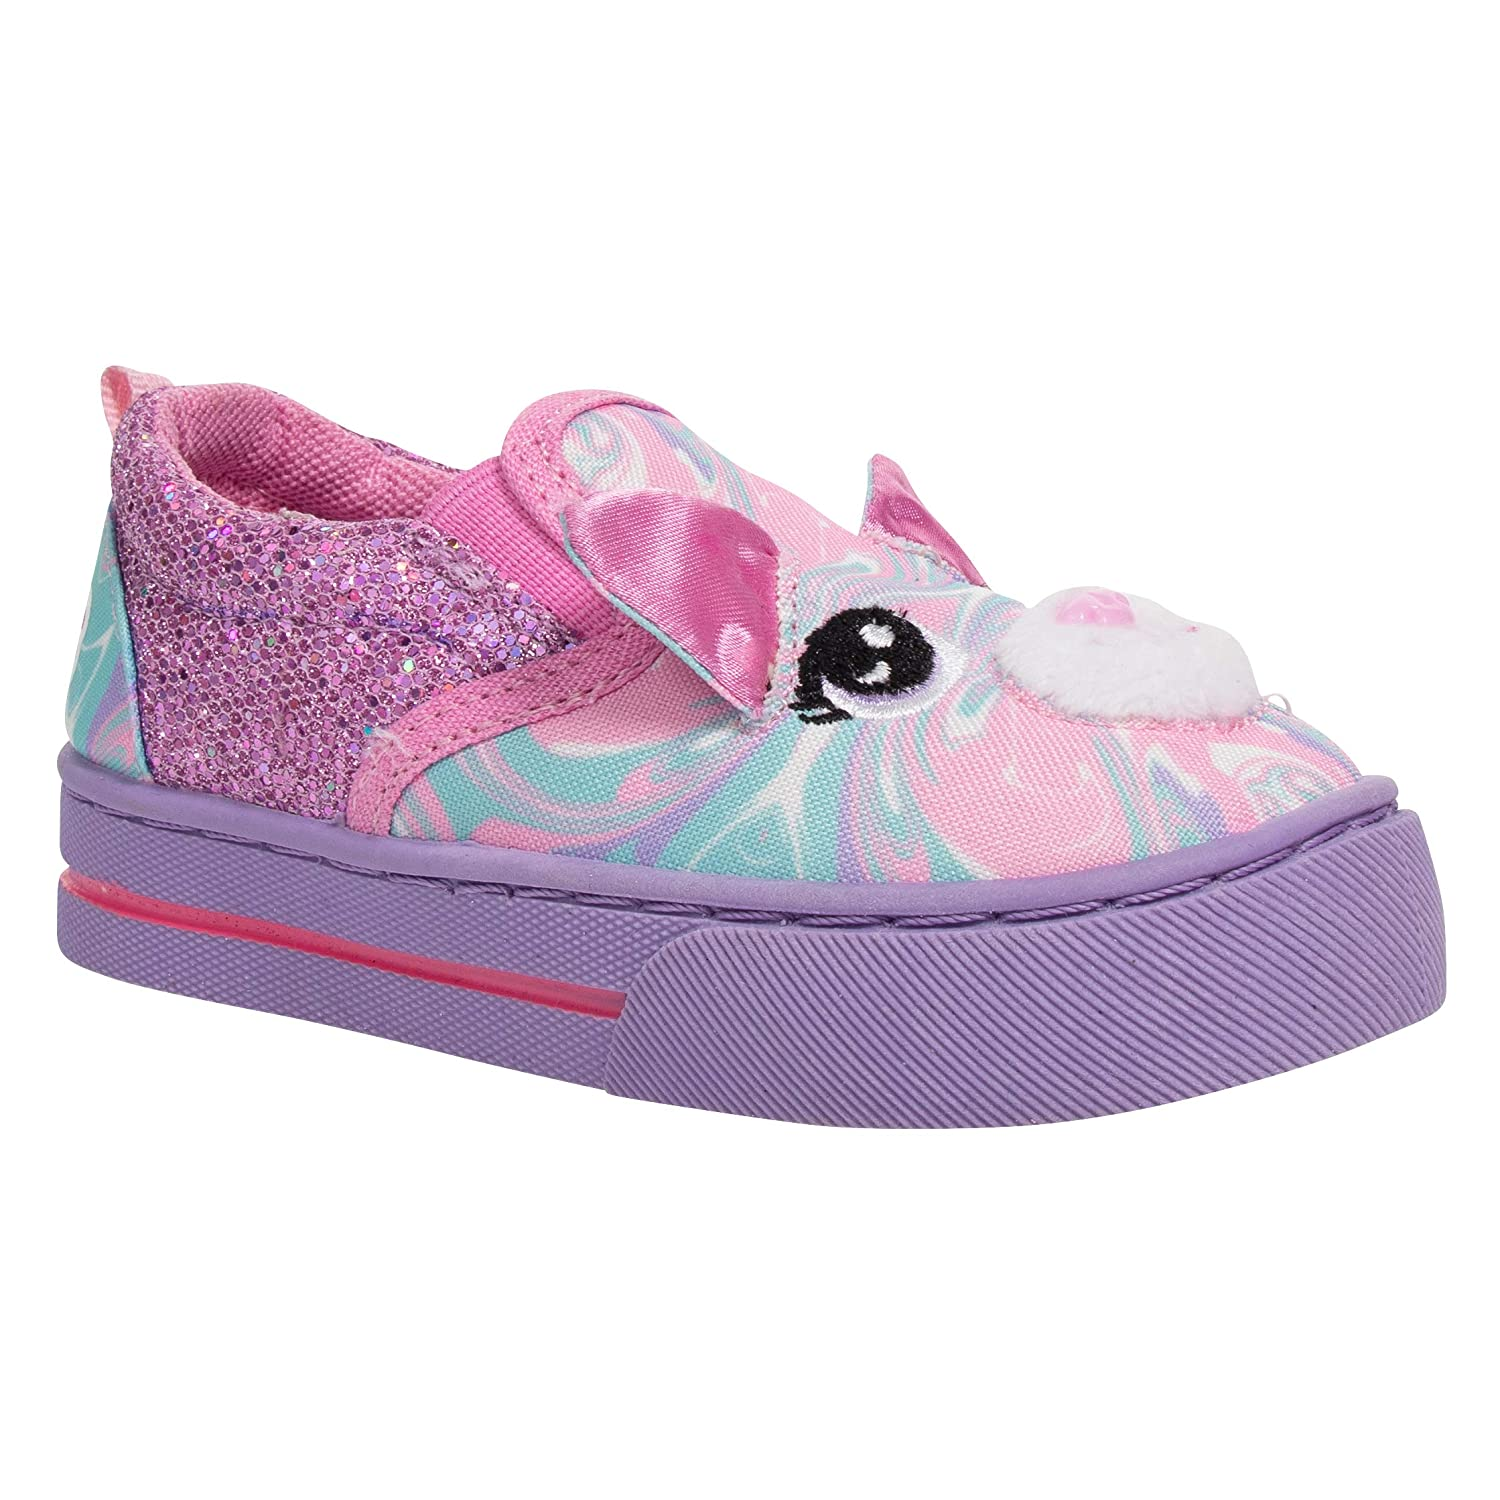 Build A Bear 3D Pink Swirly Kitty Girl Shoes